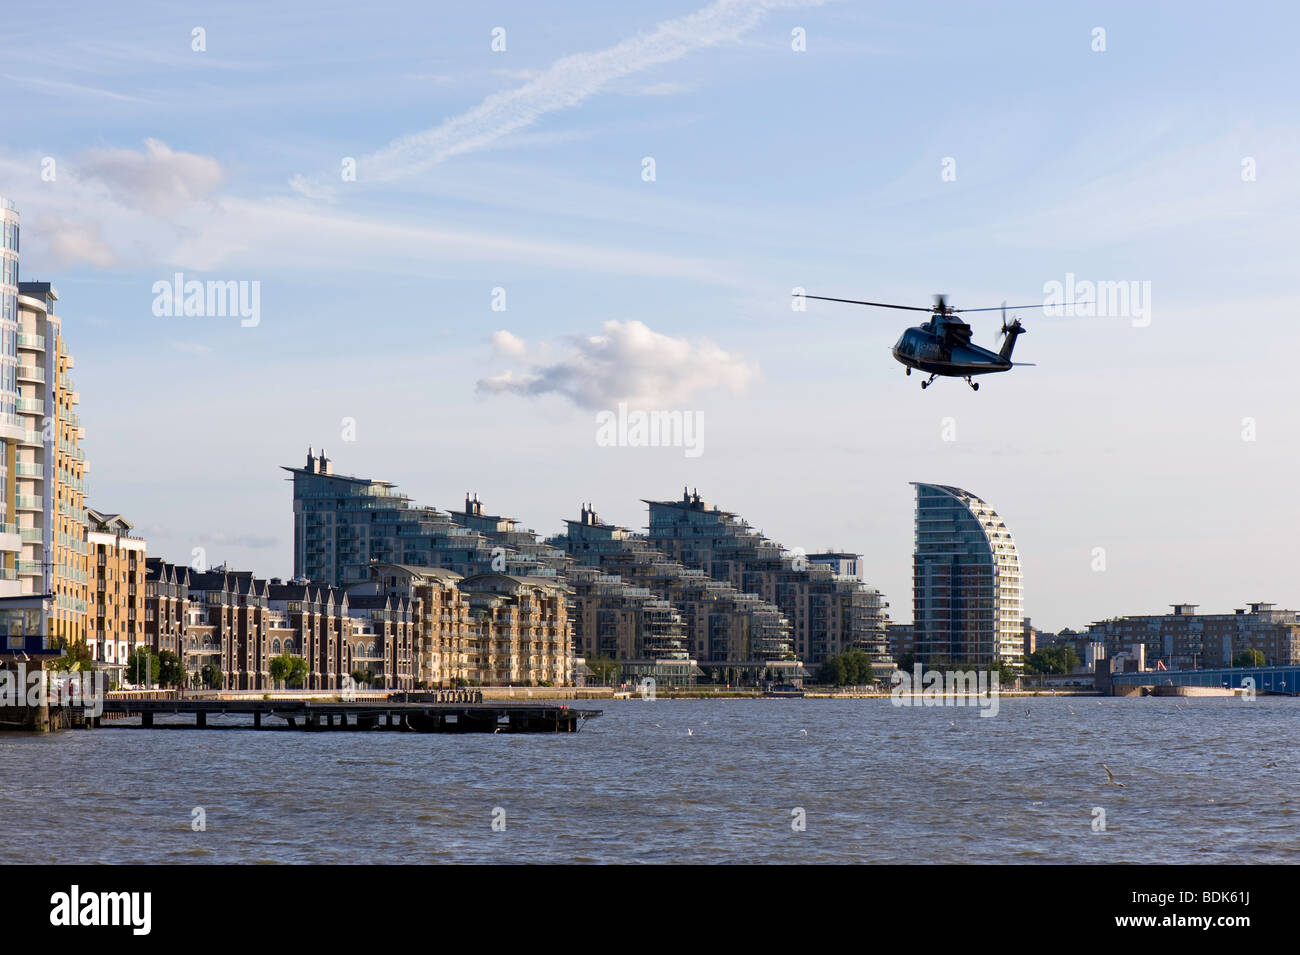 Helicopter taking off from London Heliport in Battersea, SW11, by Thames River, London, United Kingdom - Stock Image